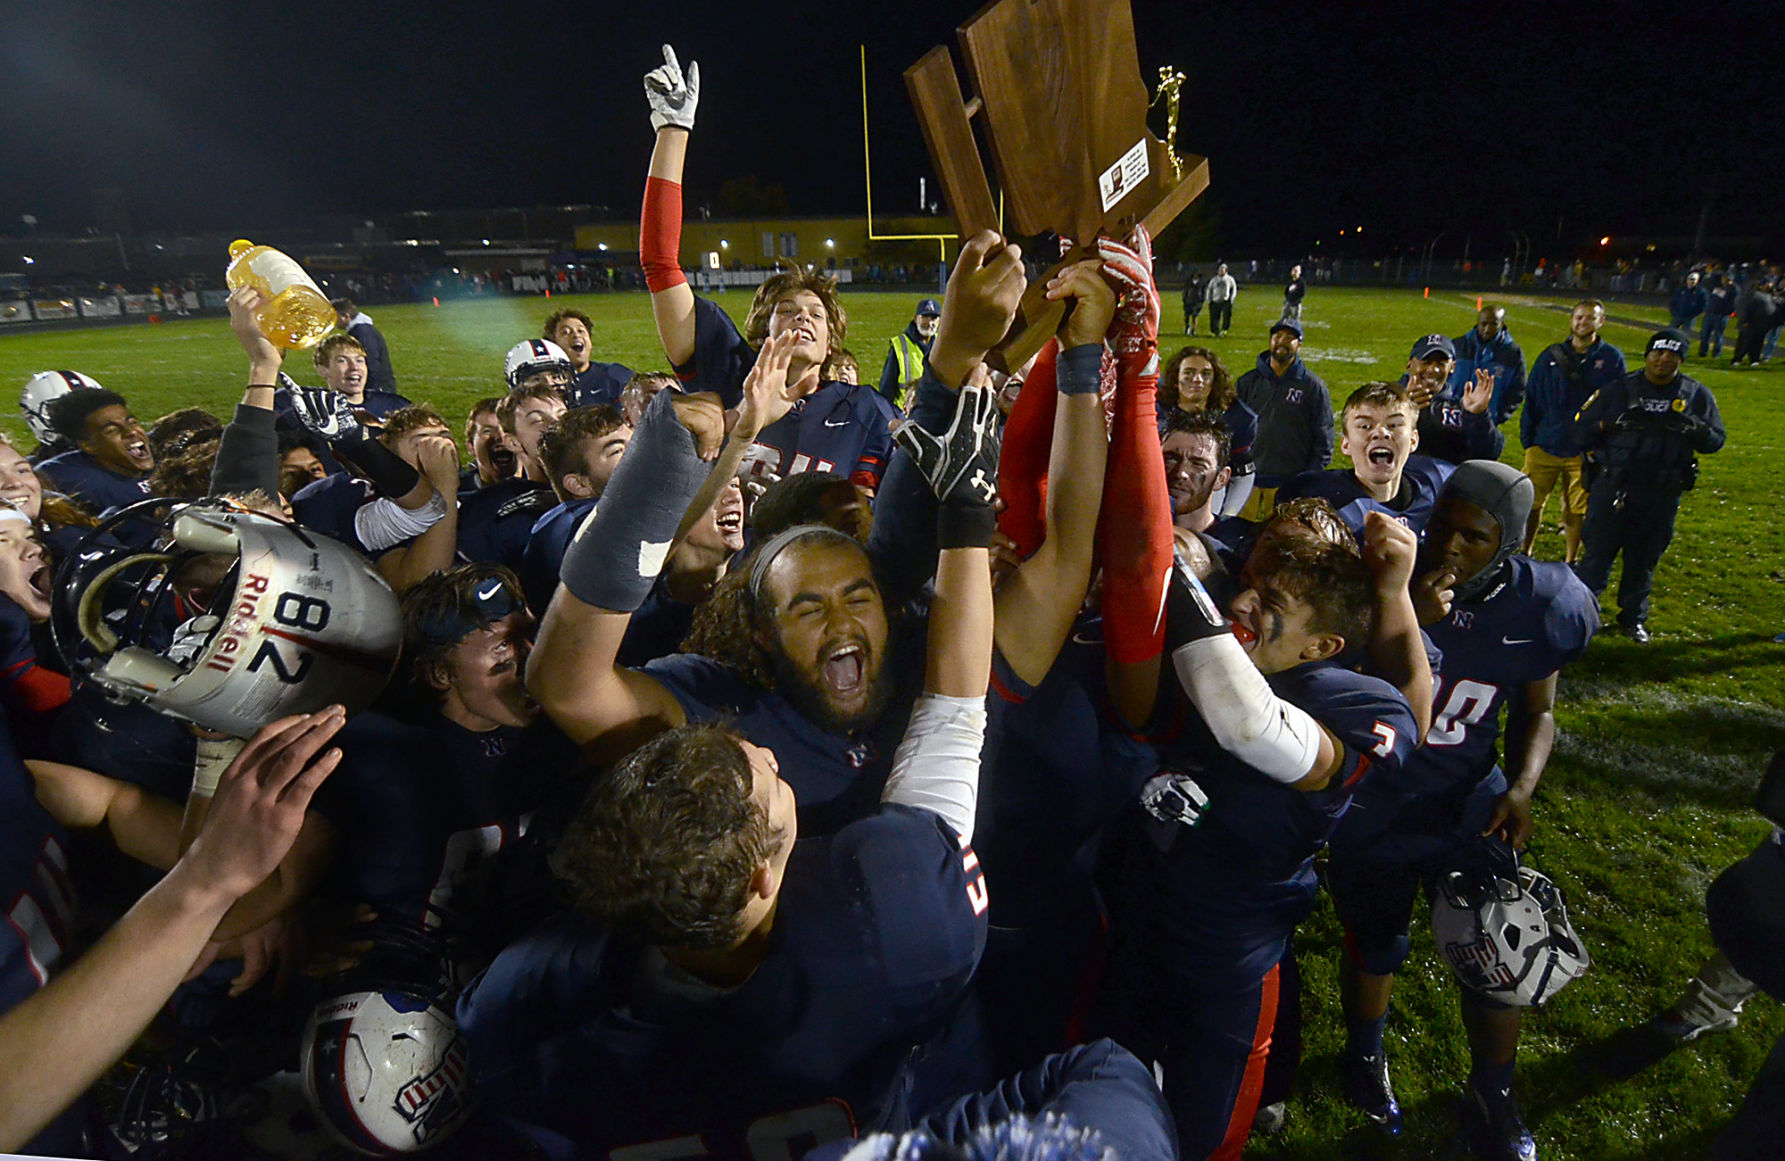 North tops South for football sectional title